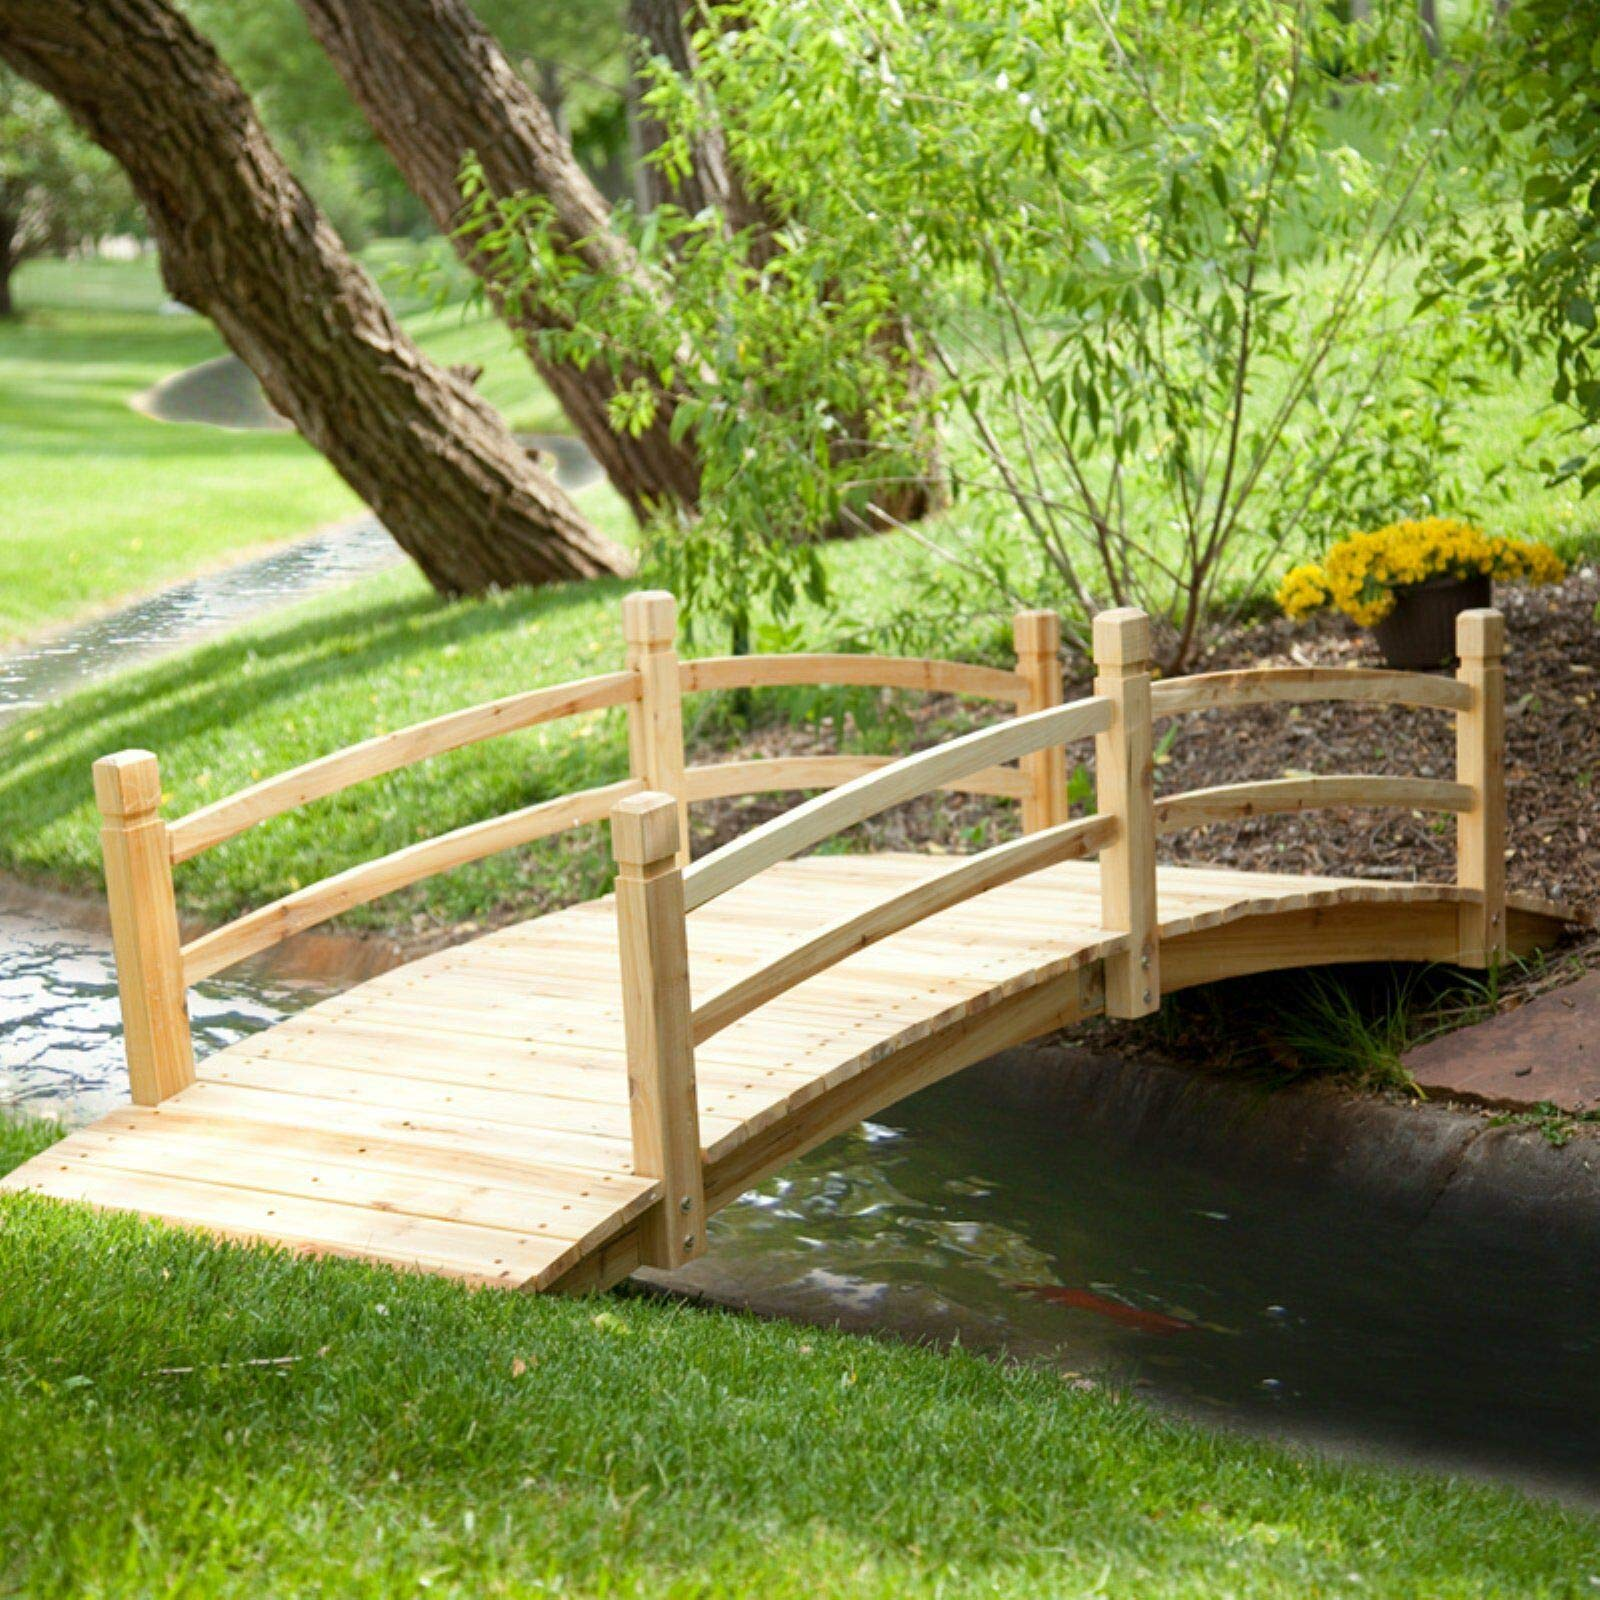 Home Improvements Natural Finish Wood 8 Foot Garden Bridge Outdoor Yard Lawn Landscaping Decor by Home Improvements (Image #1)